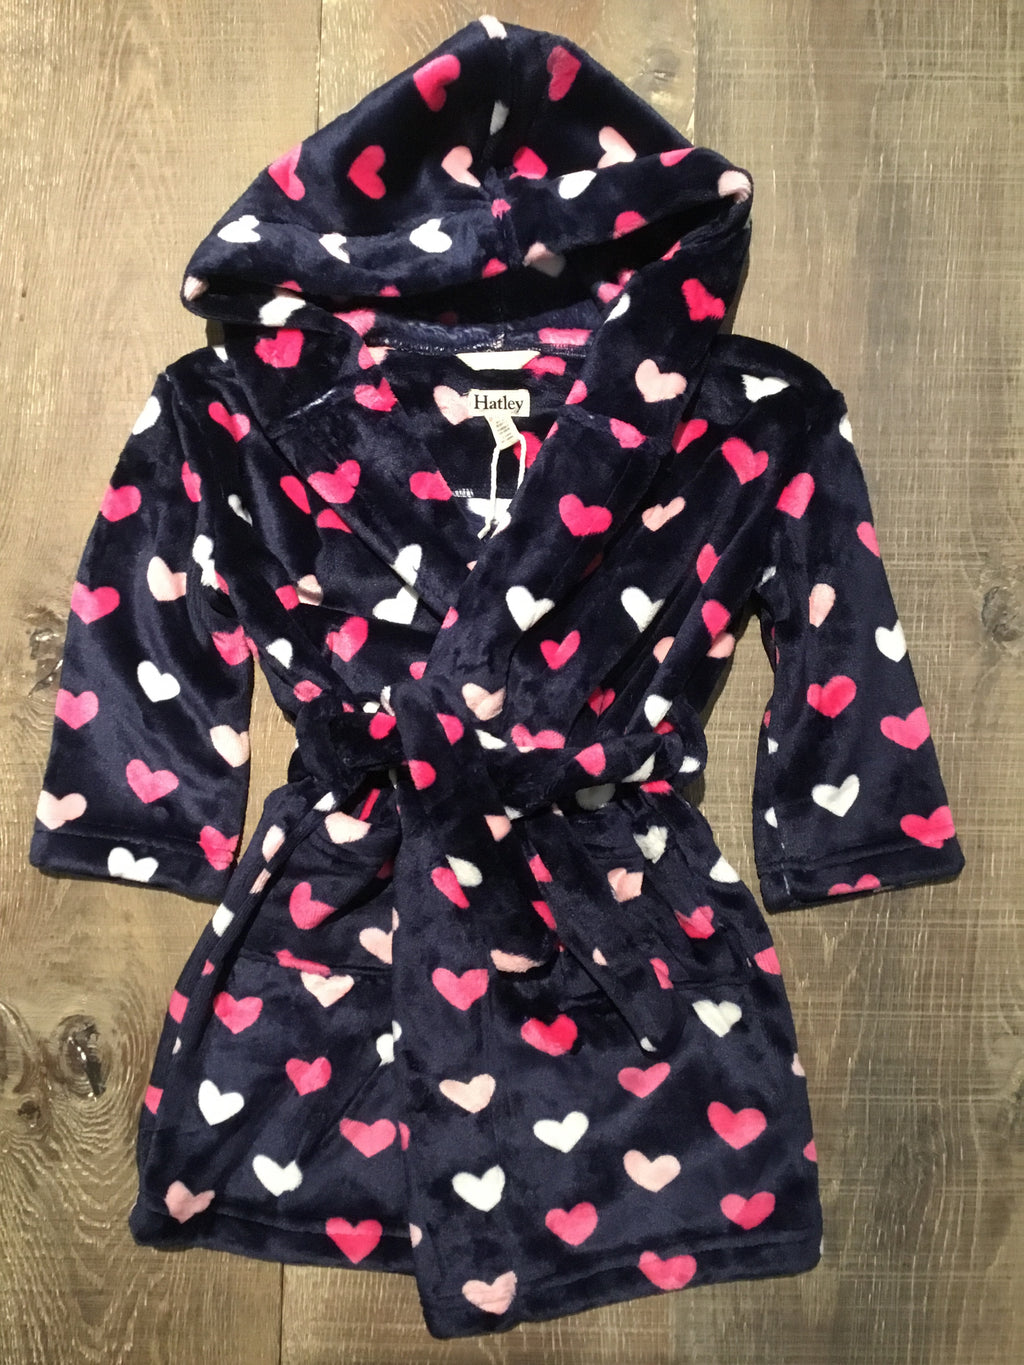 Lovey Hearts Fleece Robe